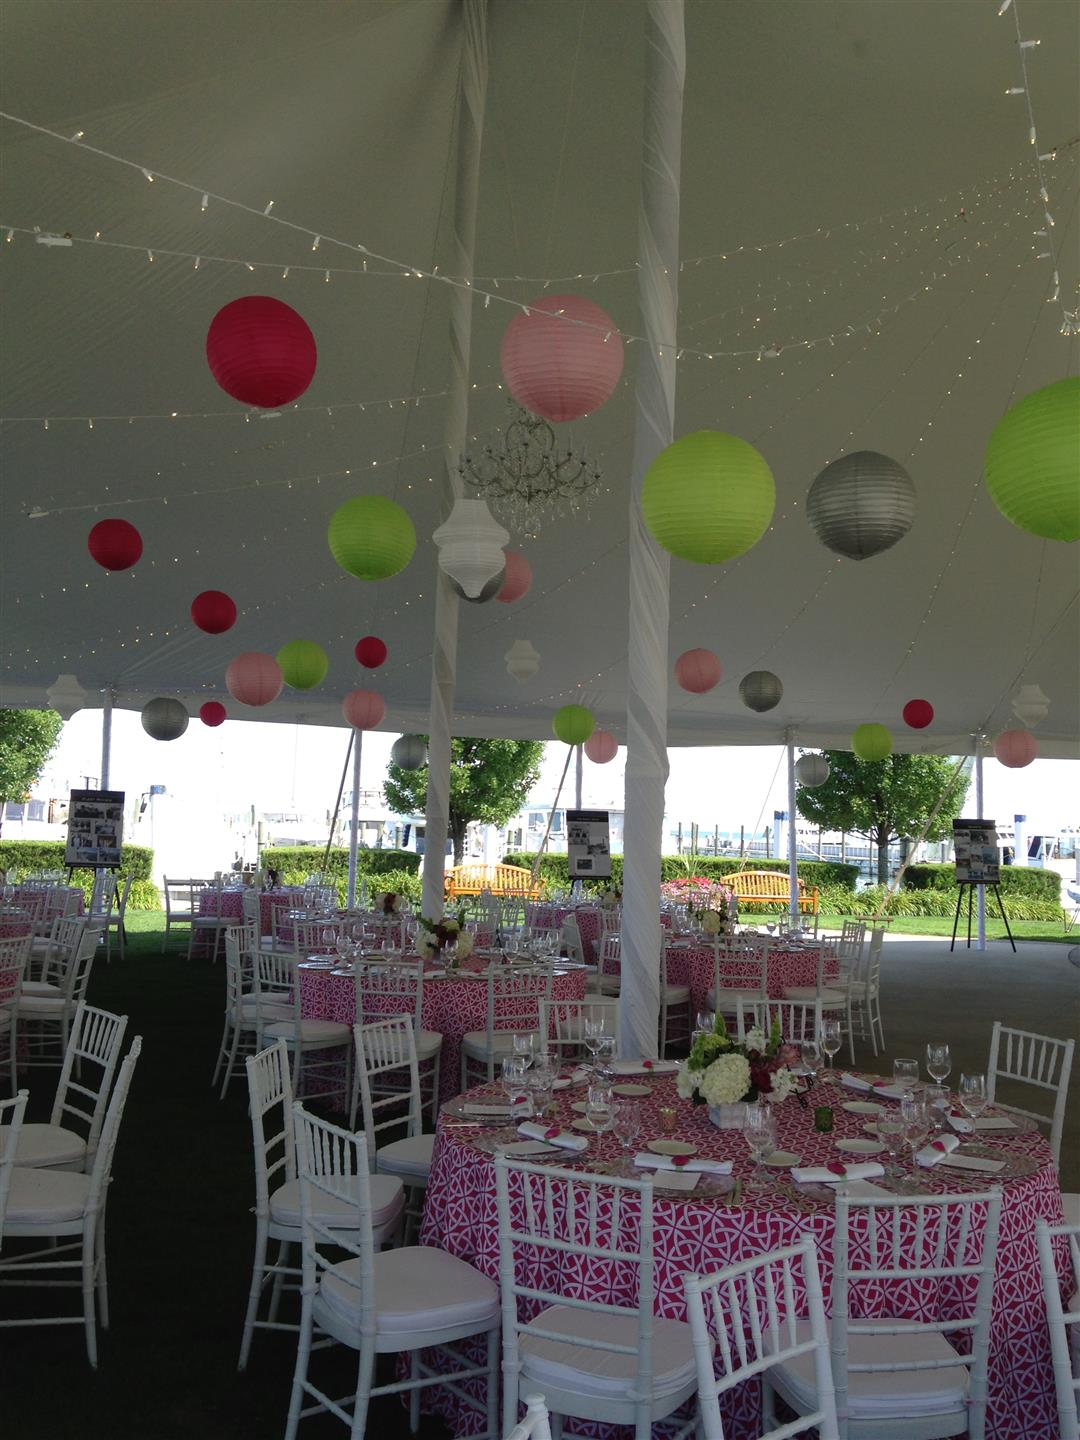 All wedding tables set up with white, link, and green lanterns hanging down